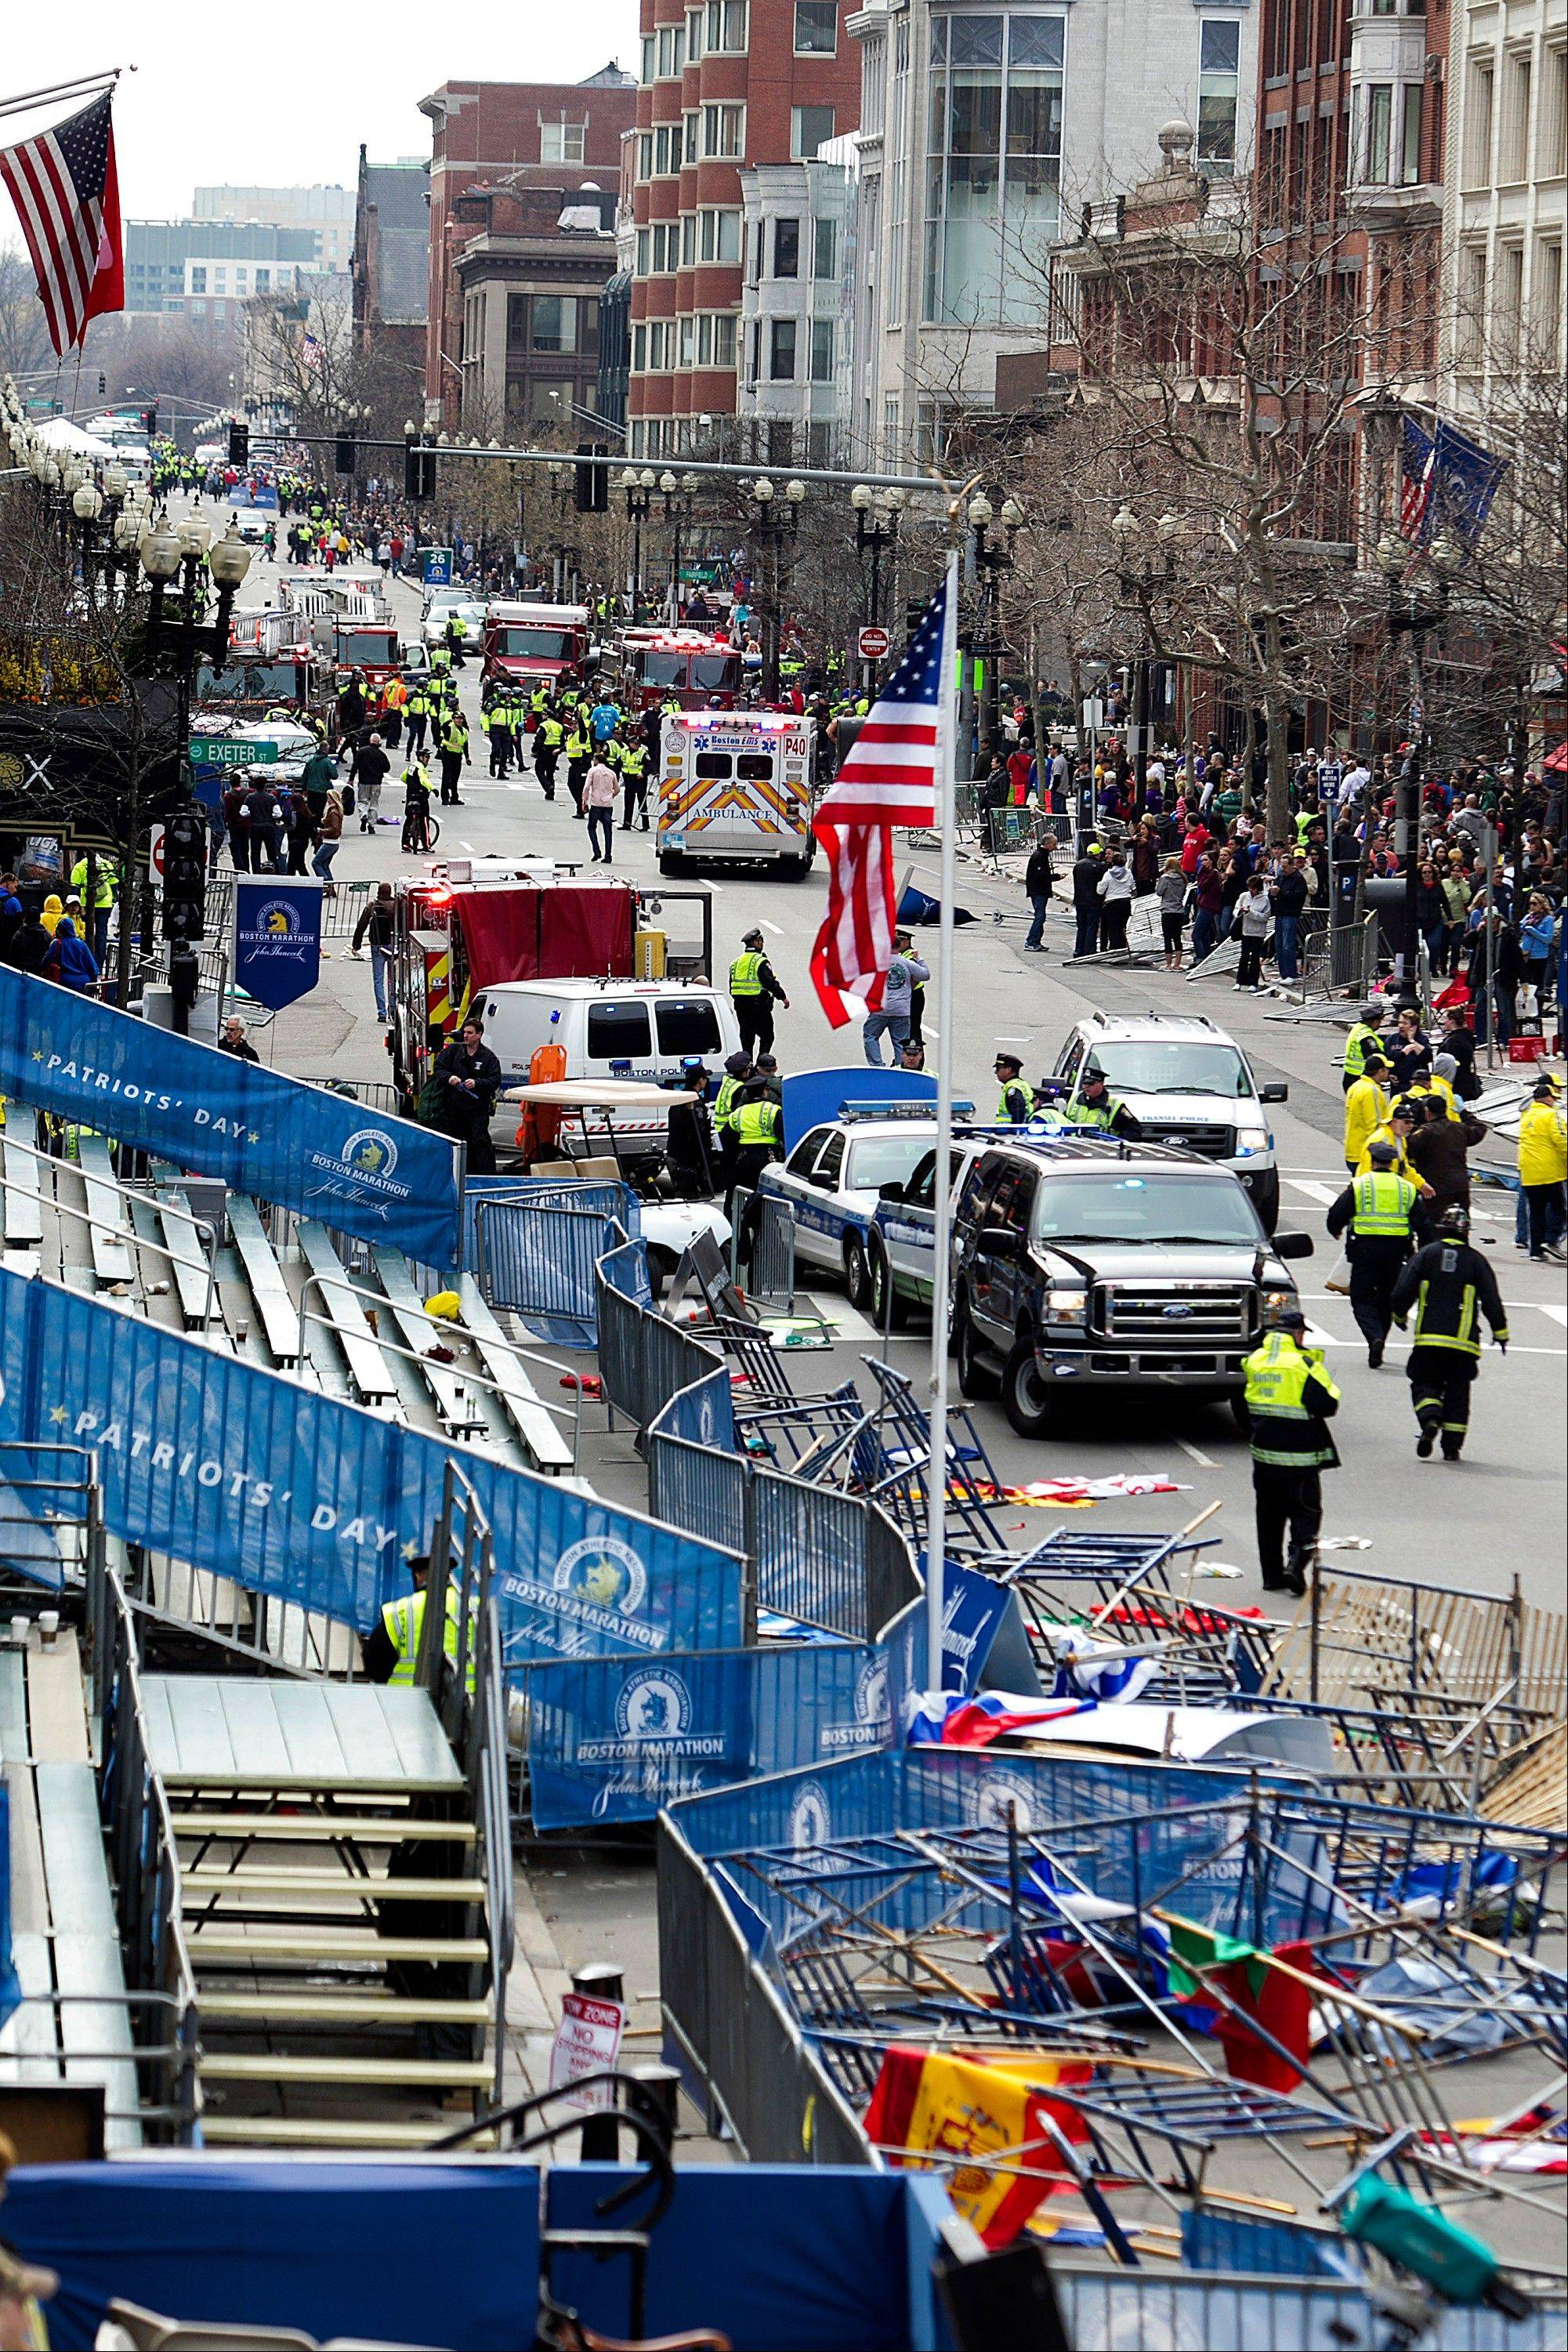 First responders rush to where two explosions occurred along the final stretch of the Boston Marathon on Boylston Street in Boston, Massachusetts, U.S., on Monday, April 15, 2013. Two powerful explosions rocked the finish line area of the Boston Marathon near Copley Square and police said many people were injured.